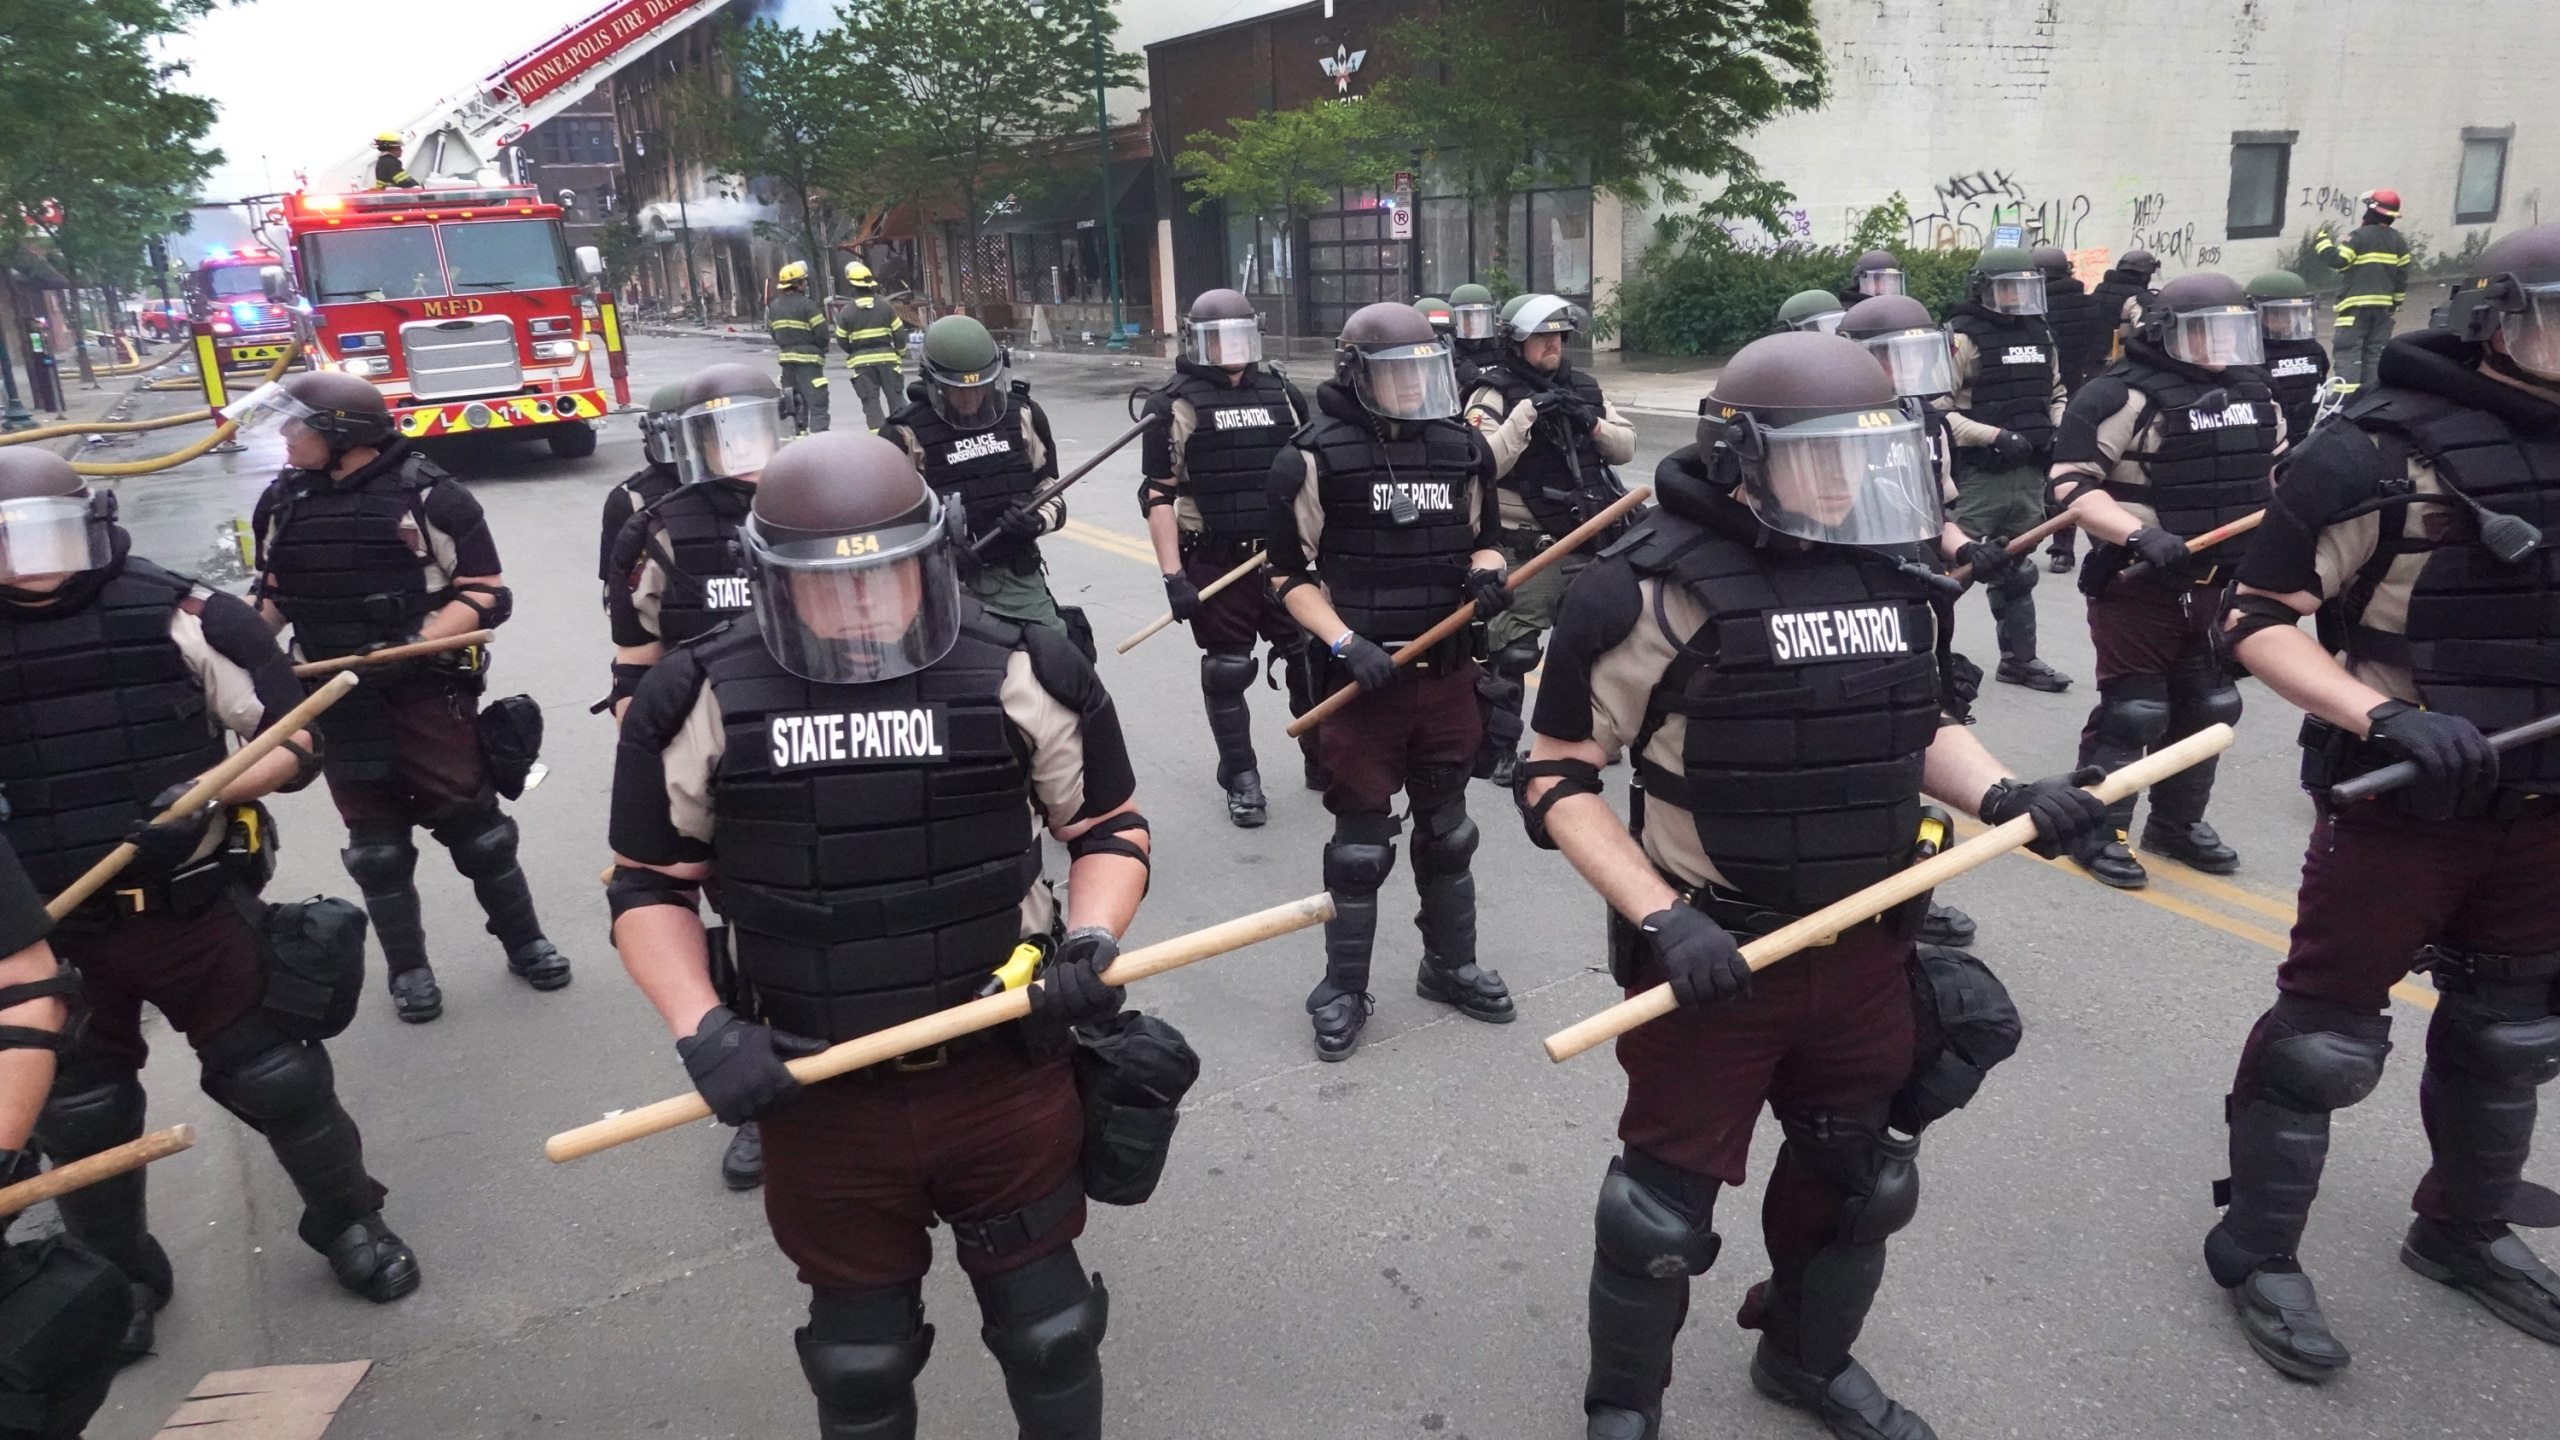 Police in Minneapolis, Minnesota secure a perimeter on May 29, 2020 following a night of rioting sparked by the death of George Floyd. (Photo by Scott Olson/Getty Images)